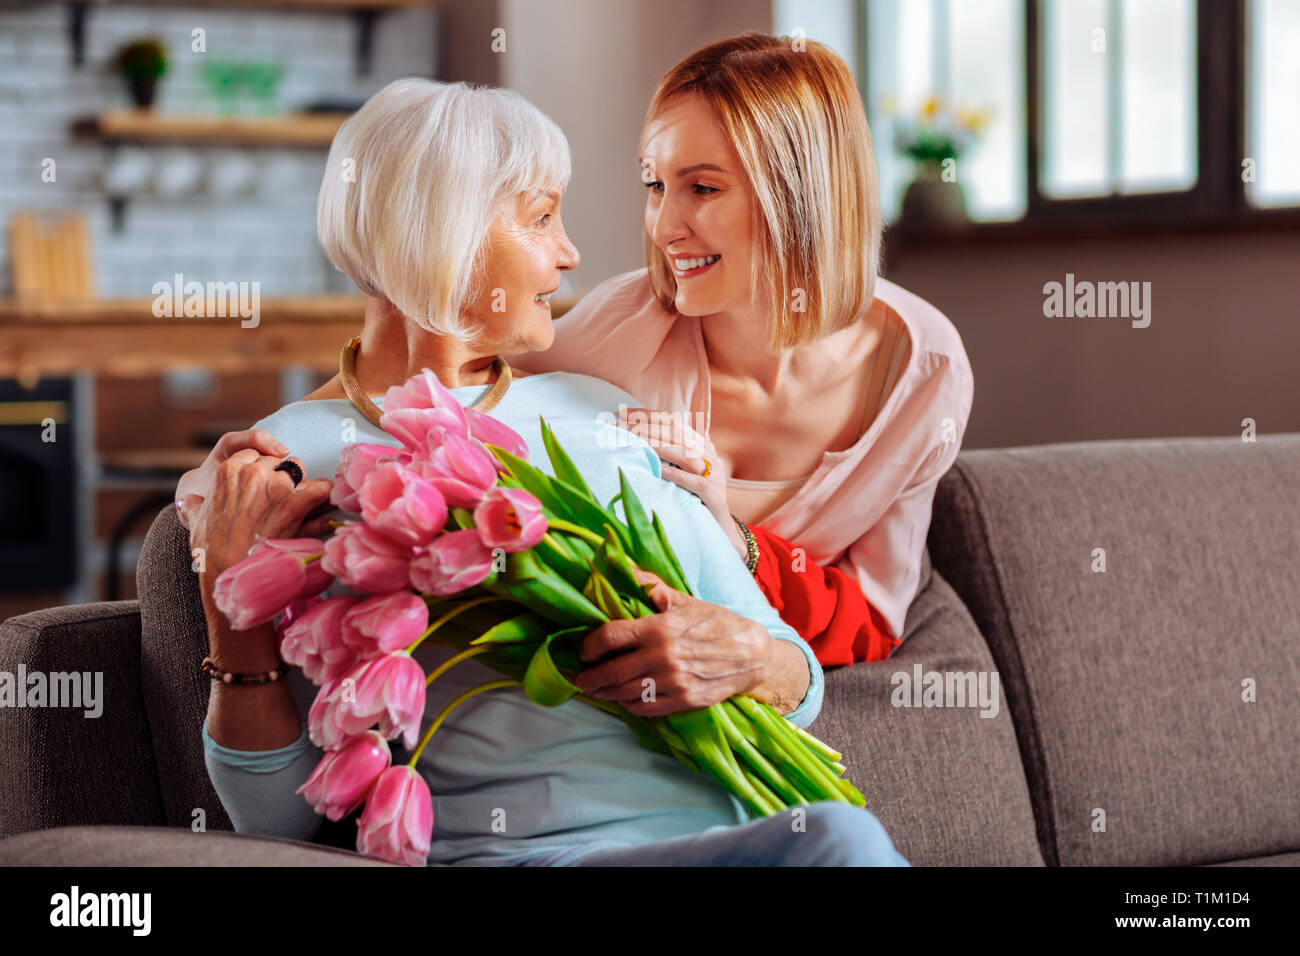 Attractive daughter tenderly looking at elderly d smiling mother - Stock Image